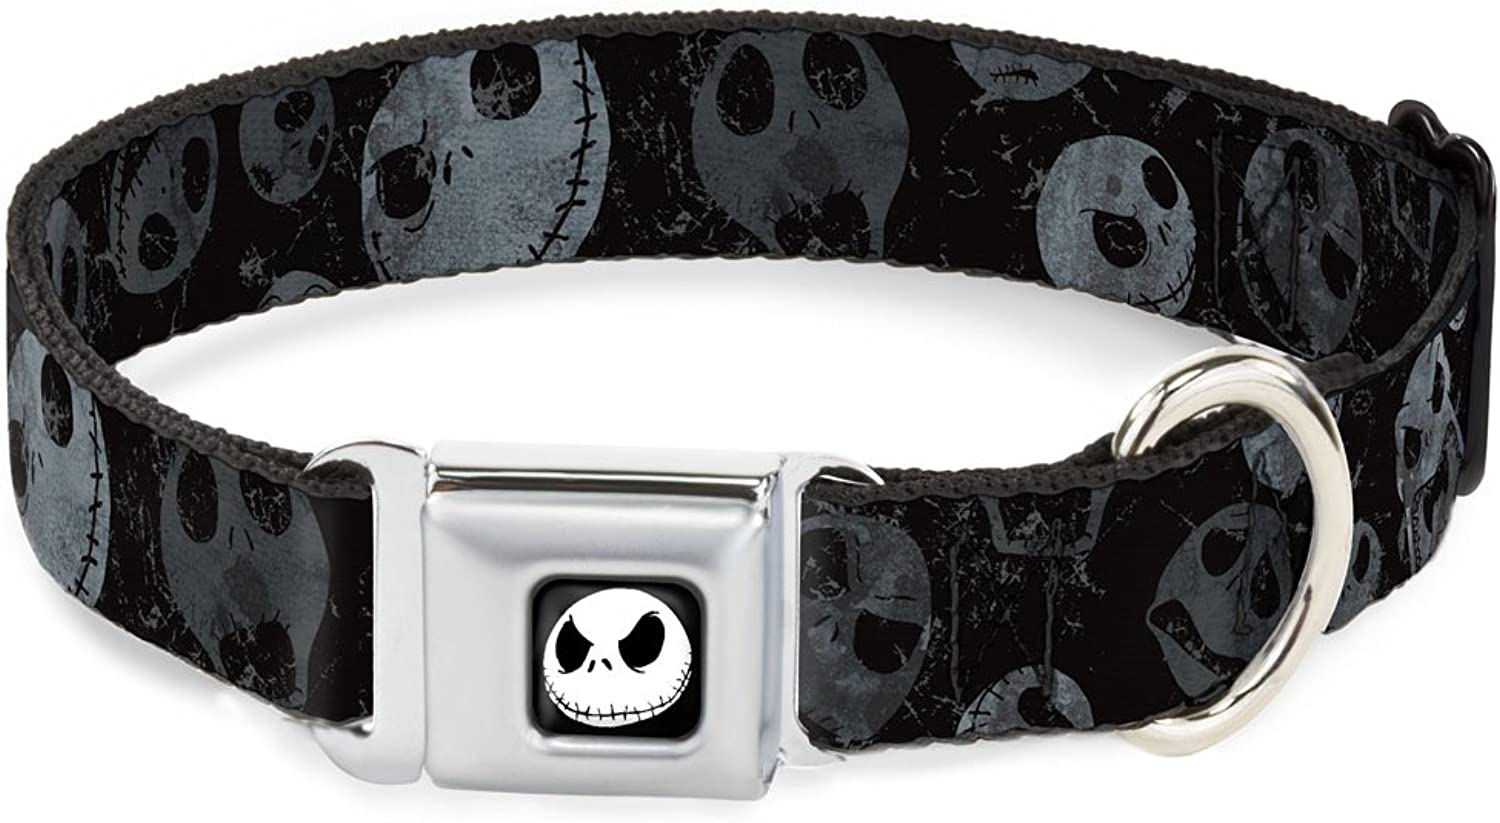 BuckleDown DCWDY032WS Dog Collar Seatbelt Buckle, Nbc Jack Expressions Scattered Weathered, 1.5  by 1318